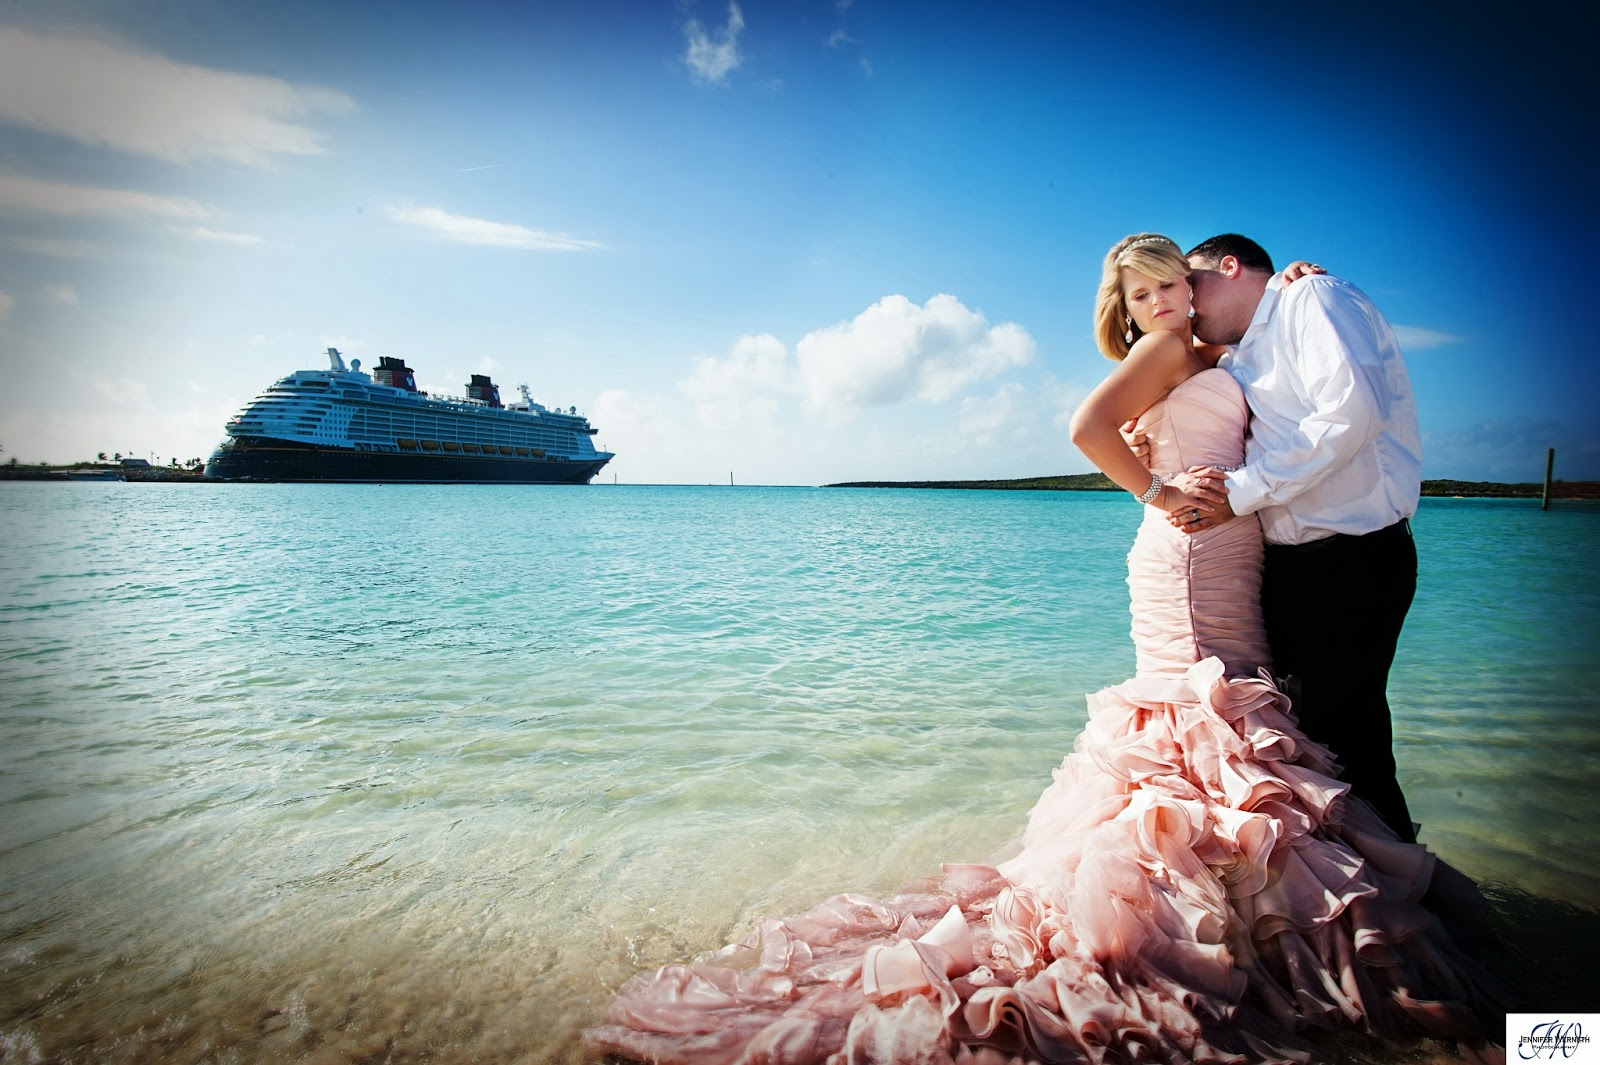 wedding photography on disney dream cruise ship - Cruise Ship Photographer